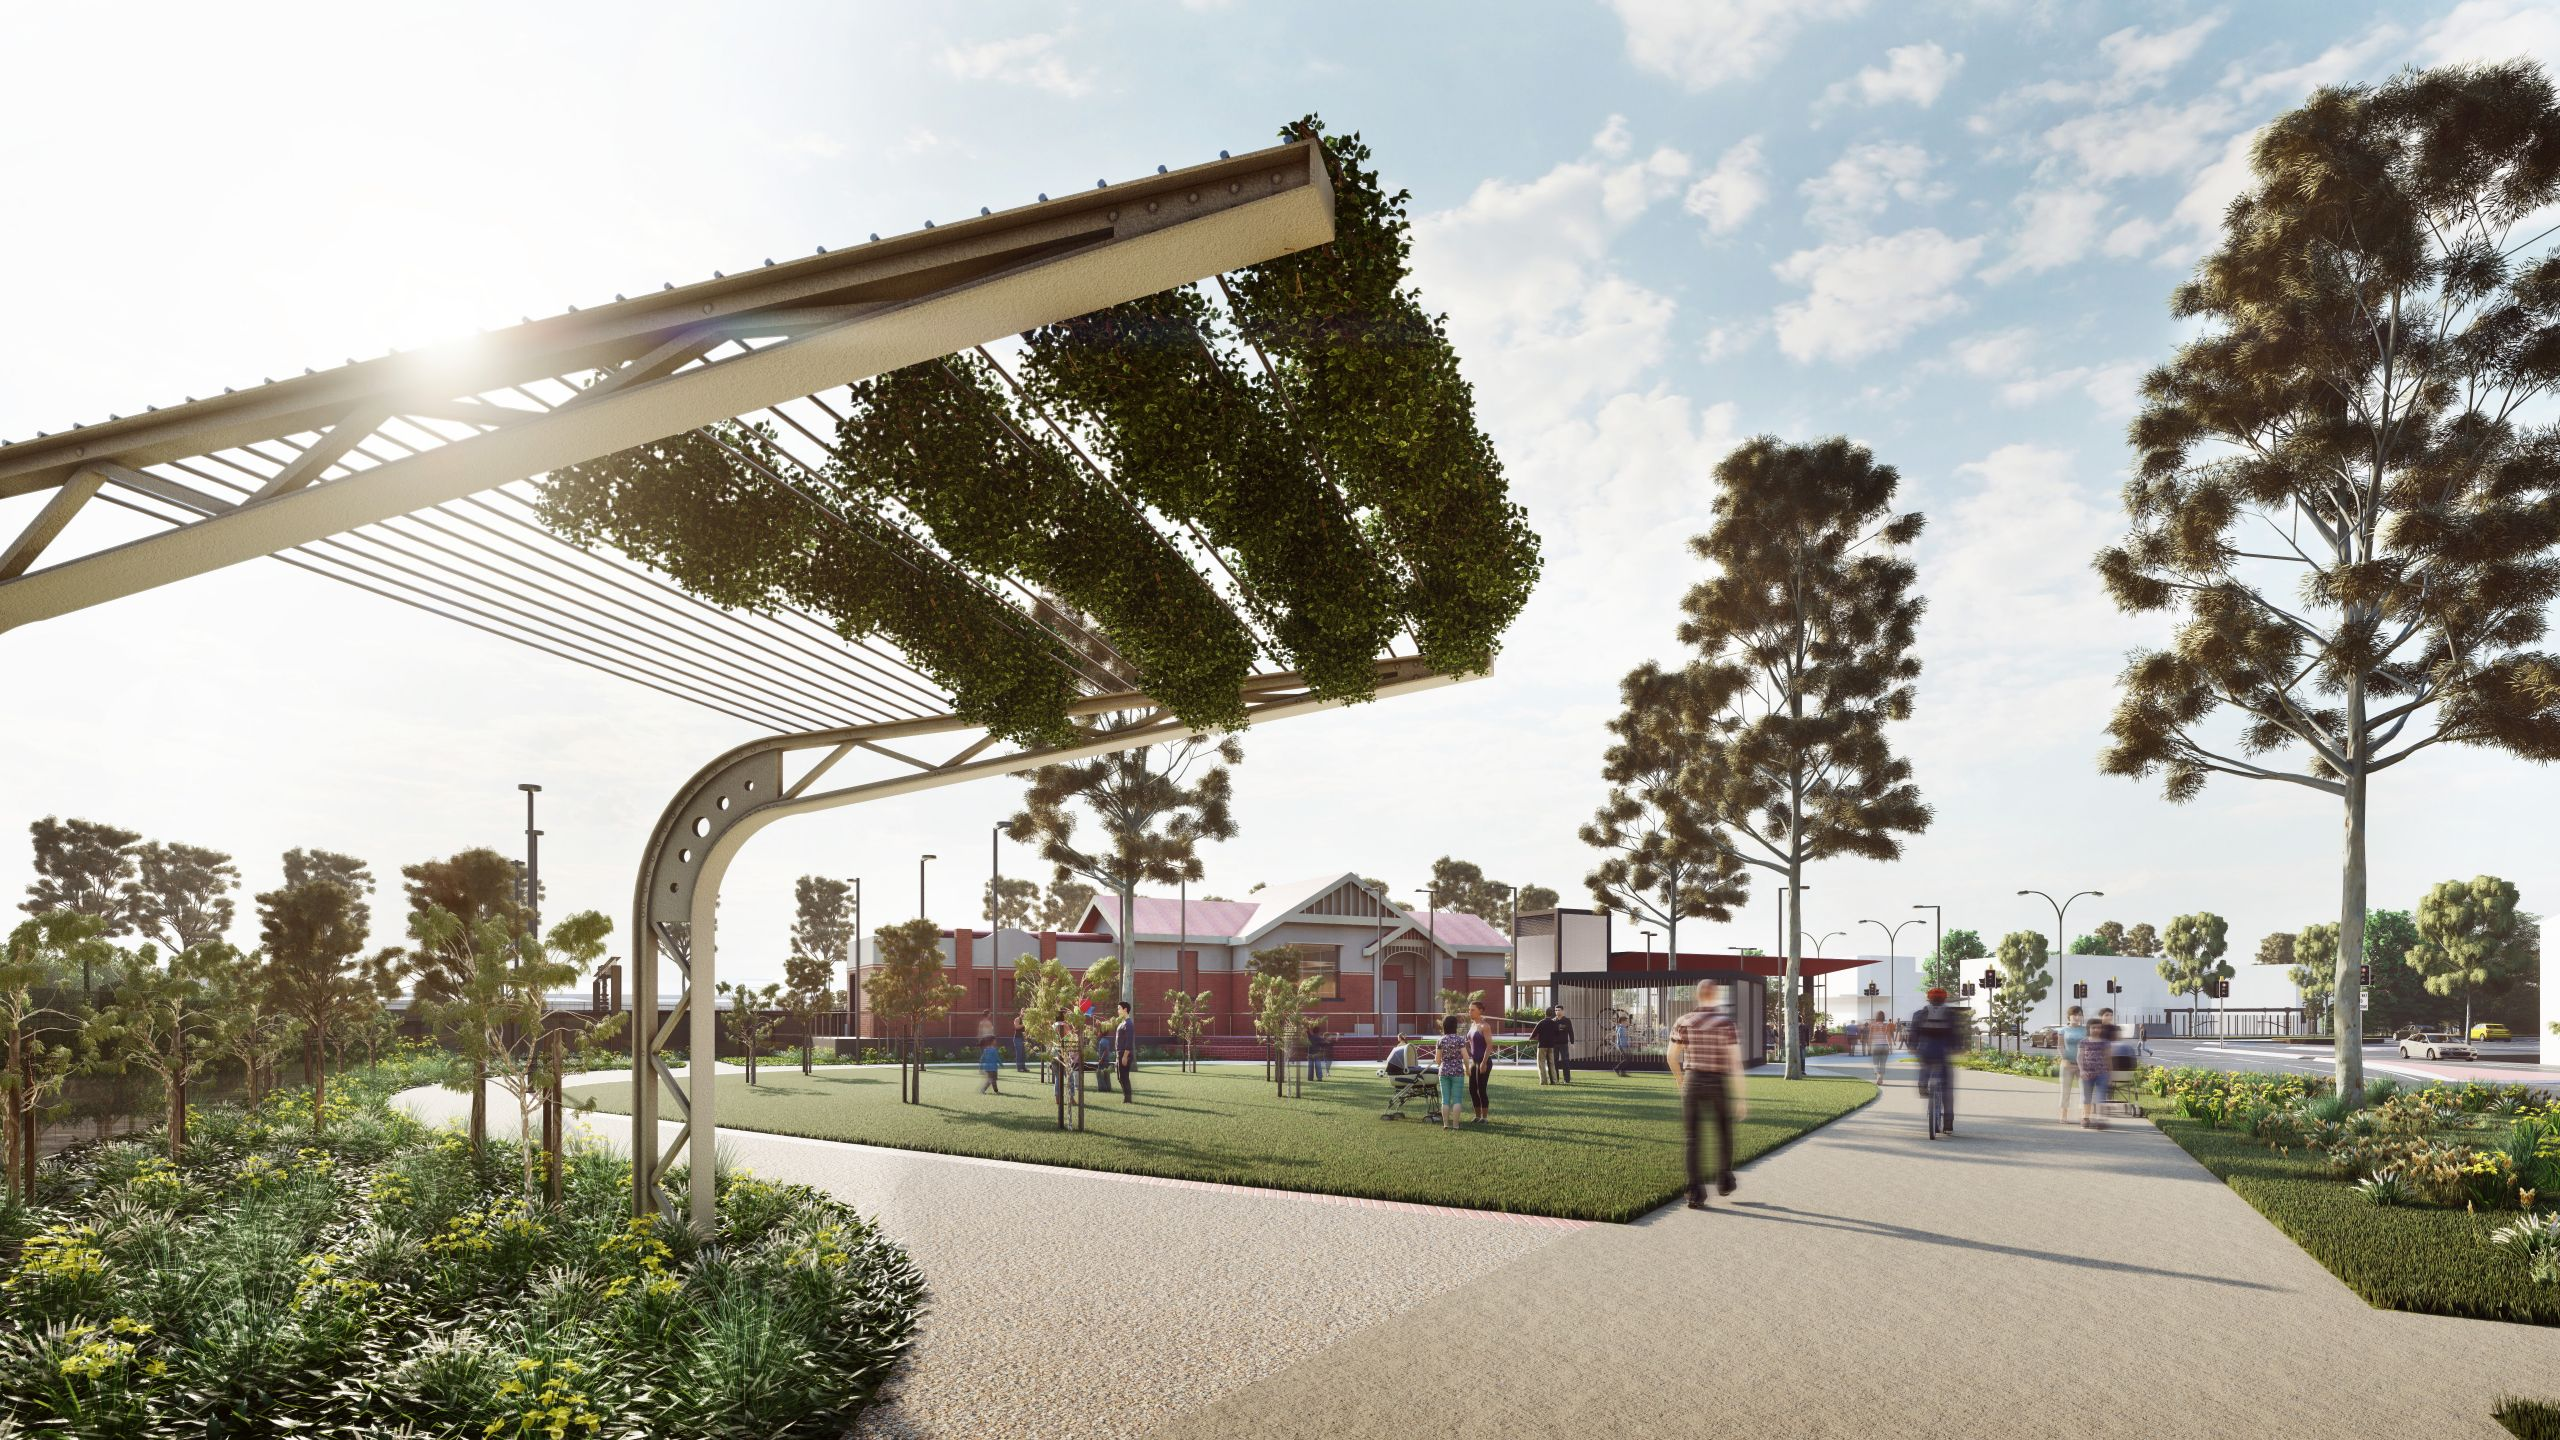 Landscaping in the precinct will feature repurposed station materials